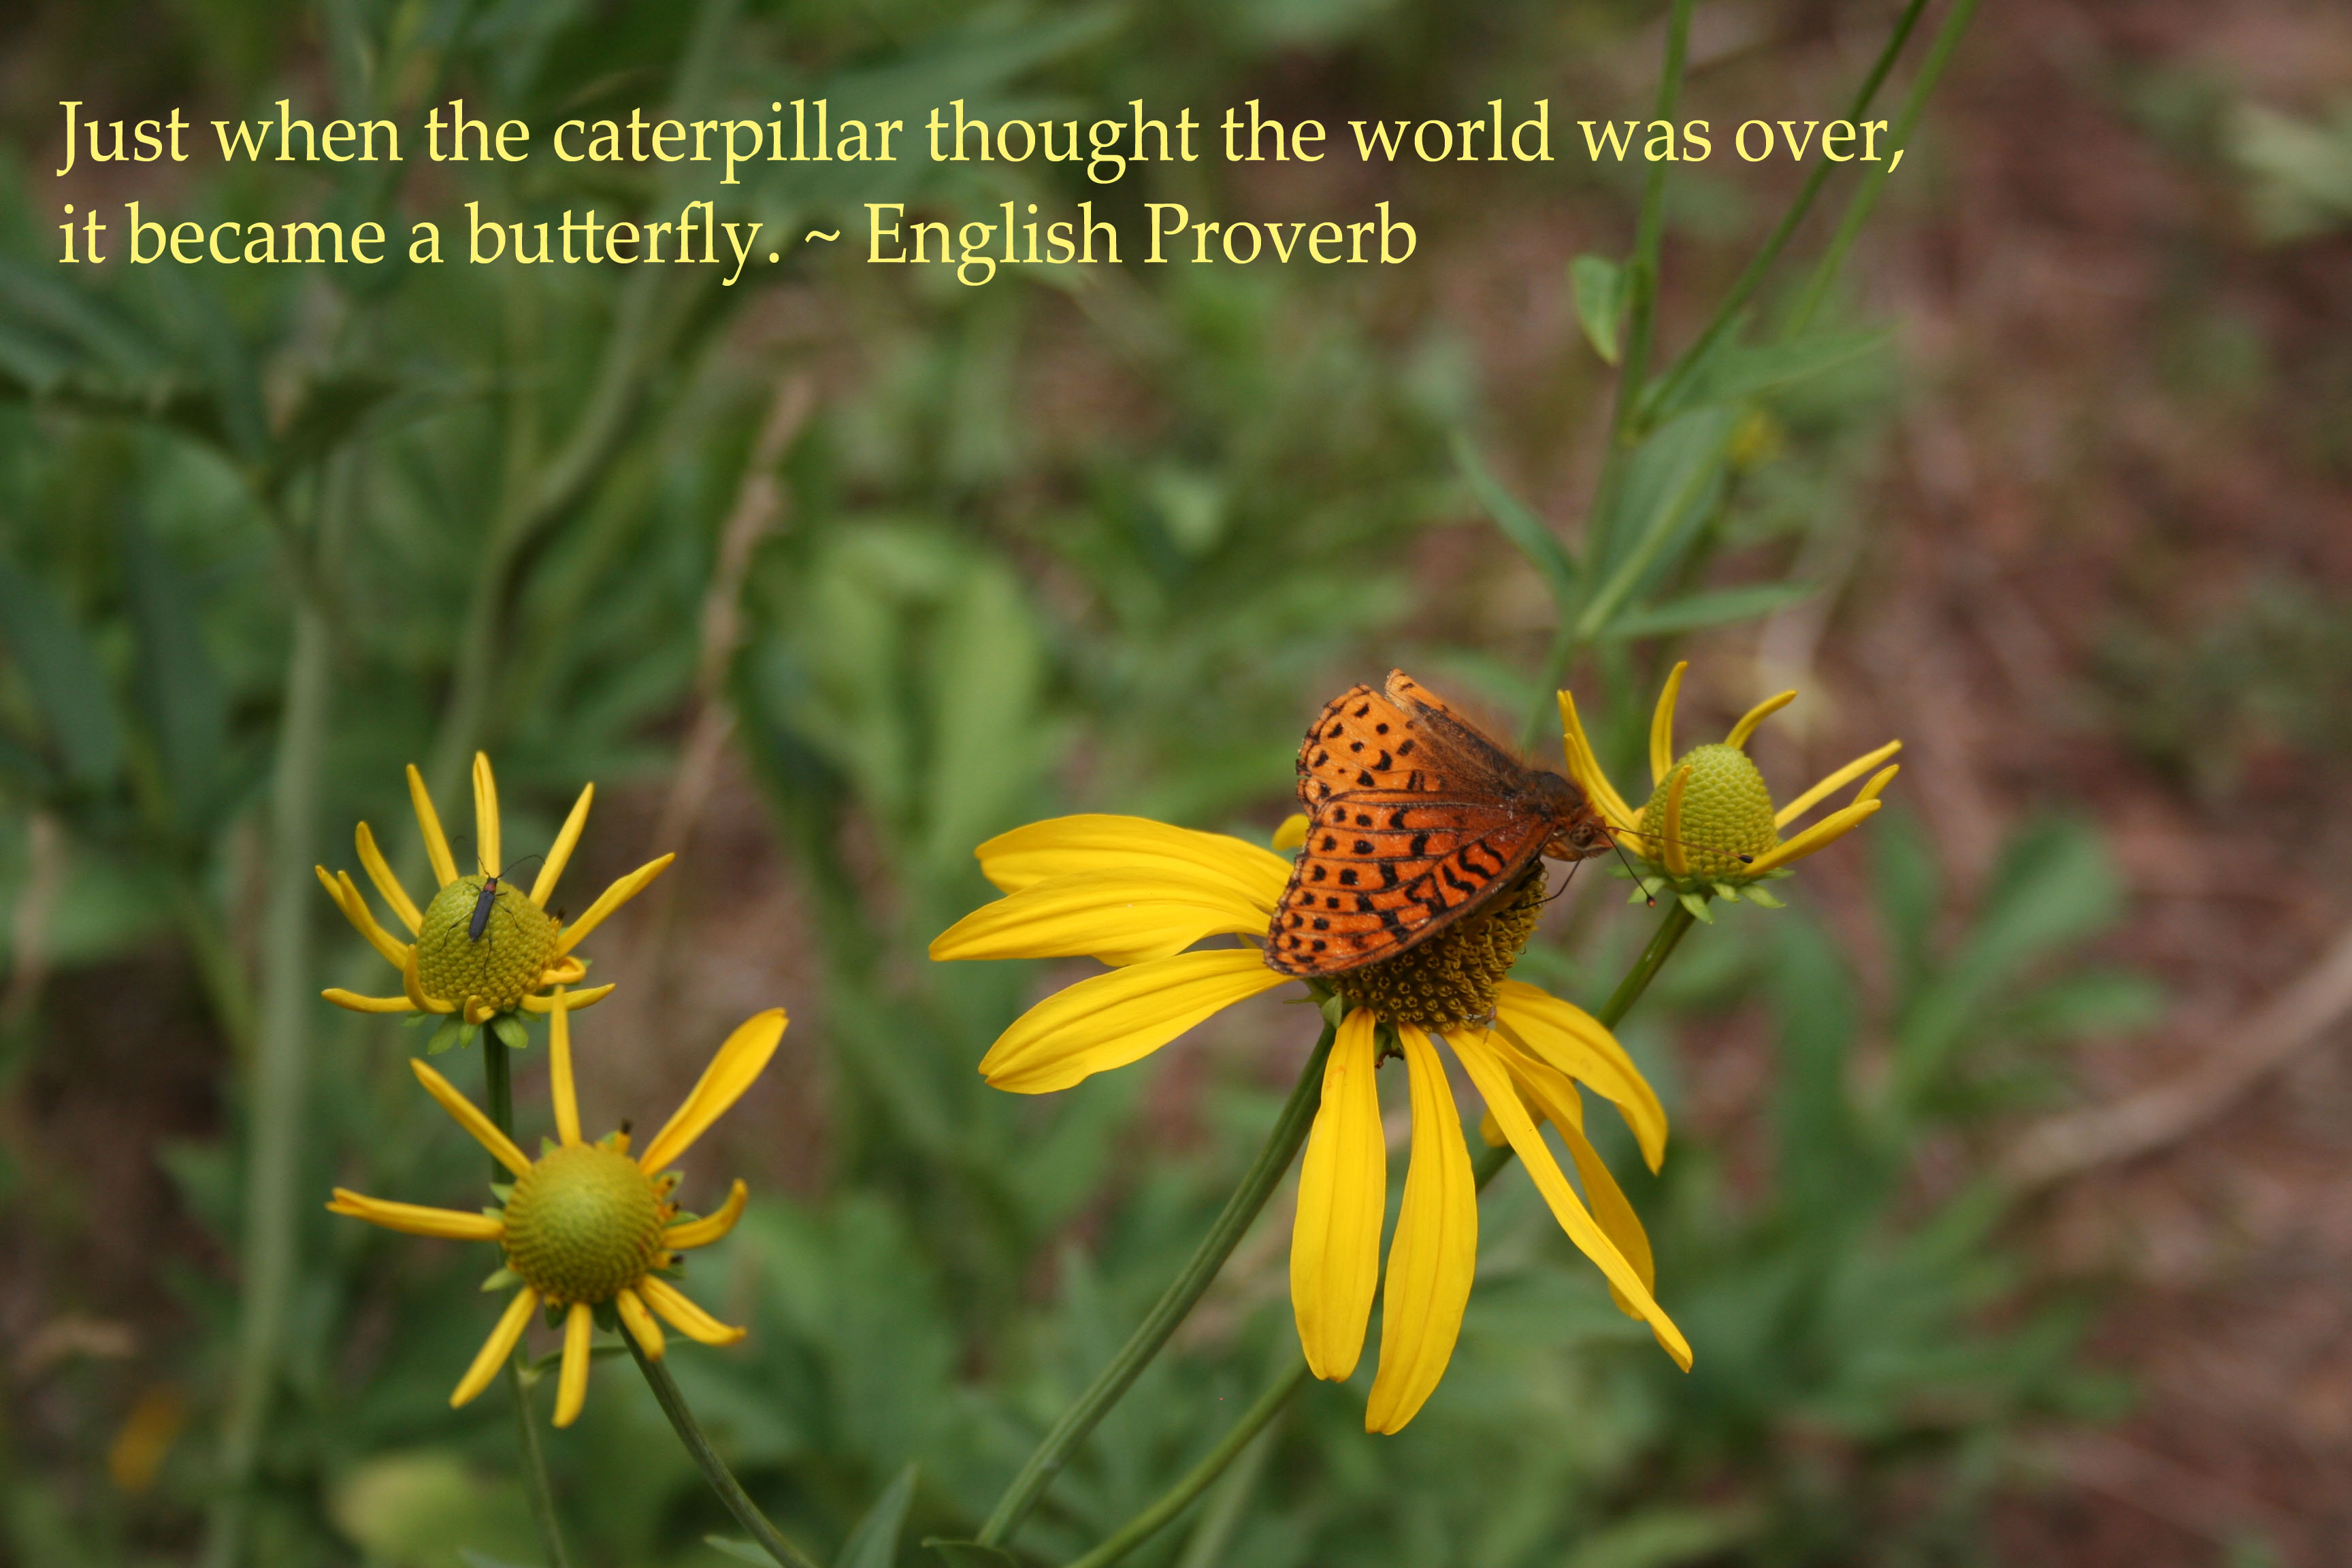 """""""Just when the caterpillar thought the world was over, it became a butterfly."""" - English proverb written on a photo of a butterfly on a flower."""